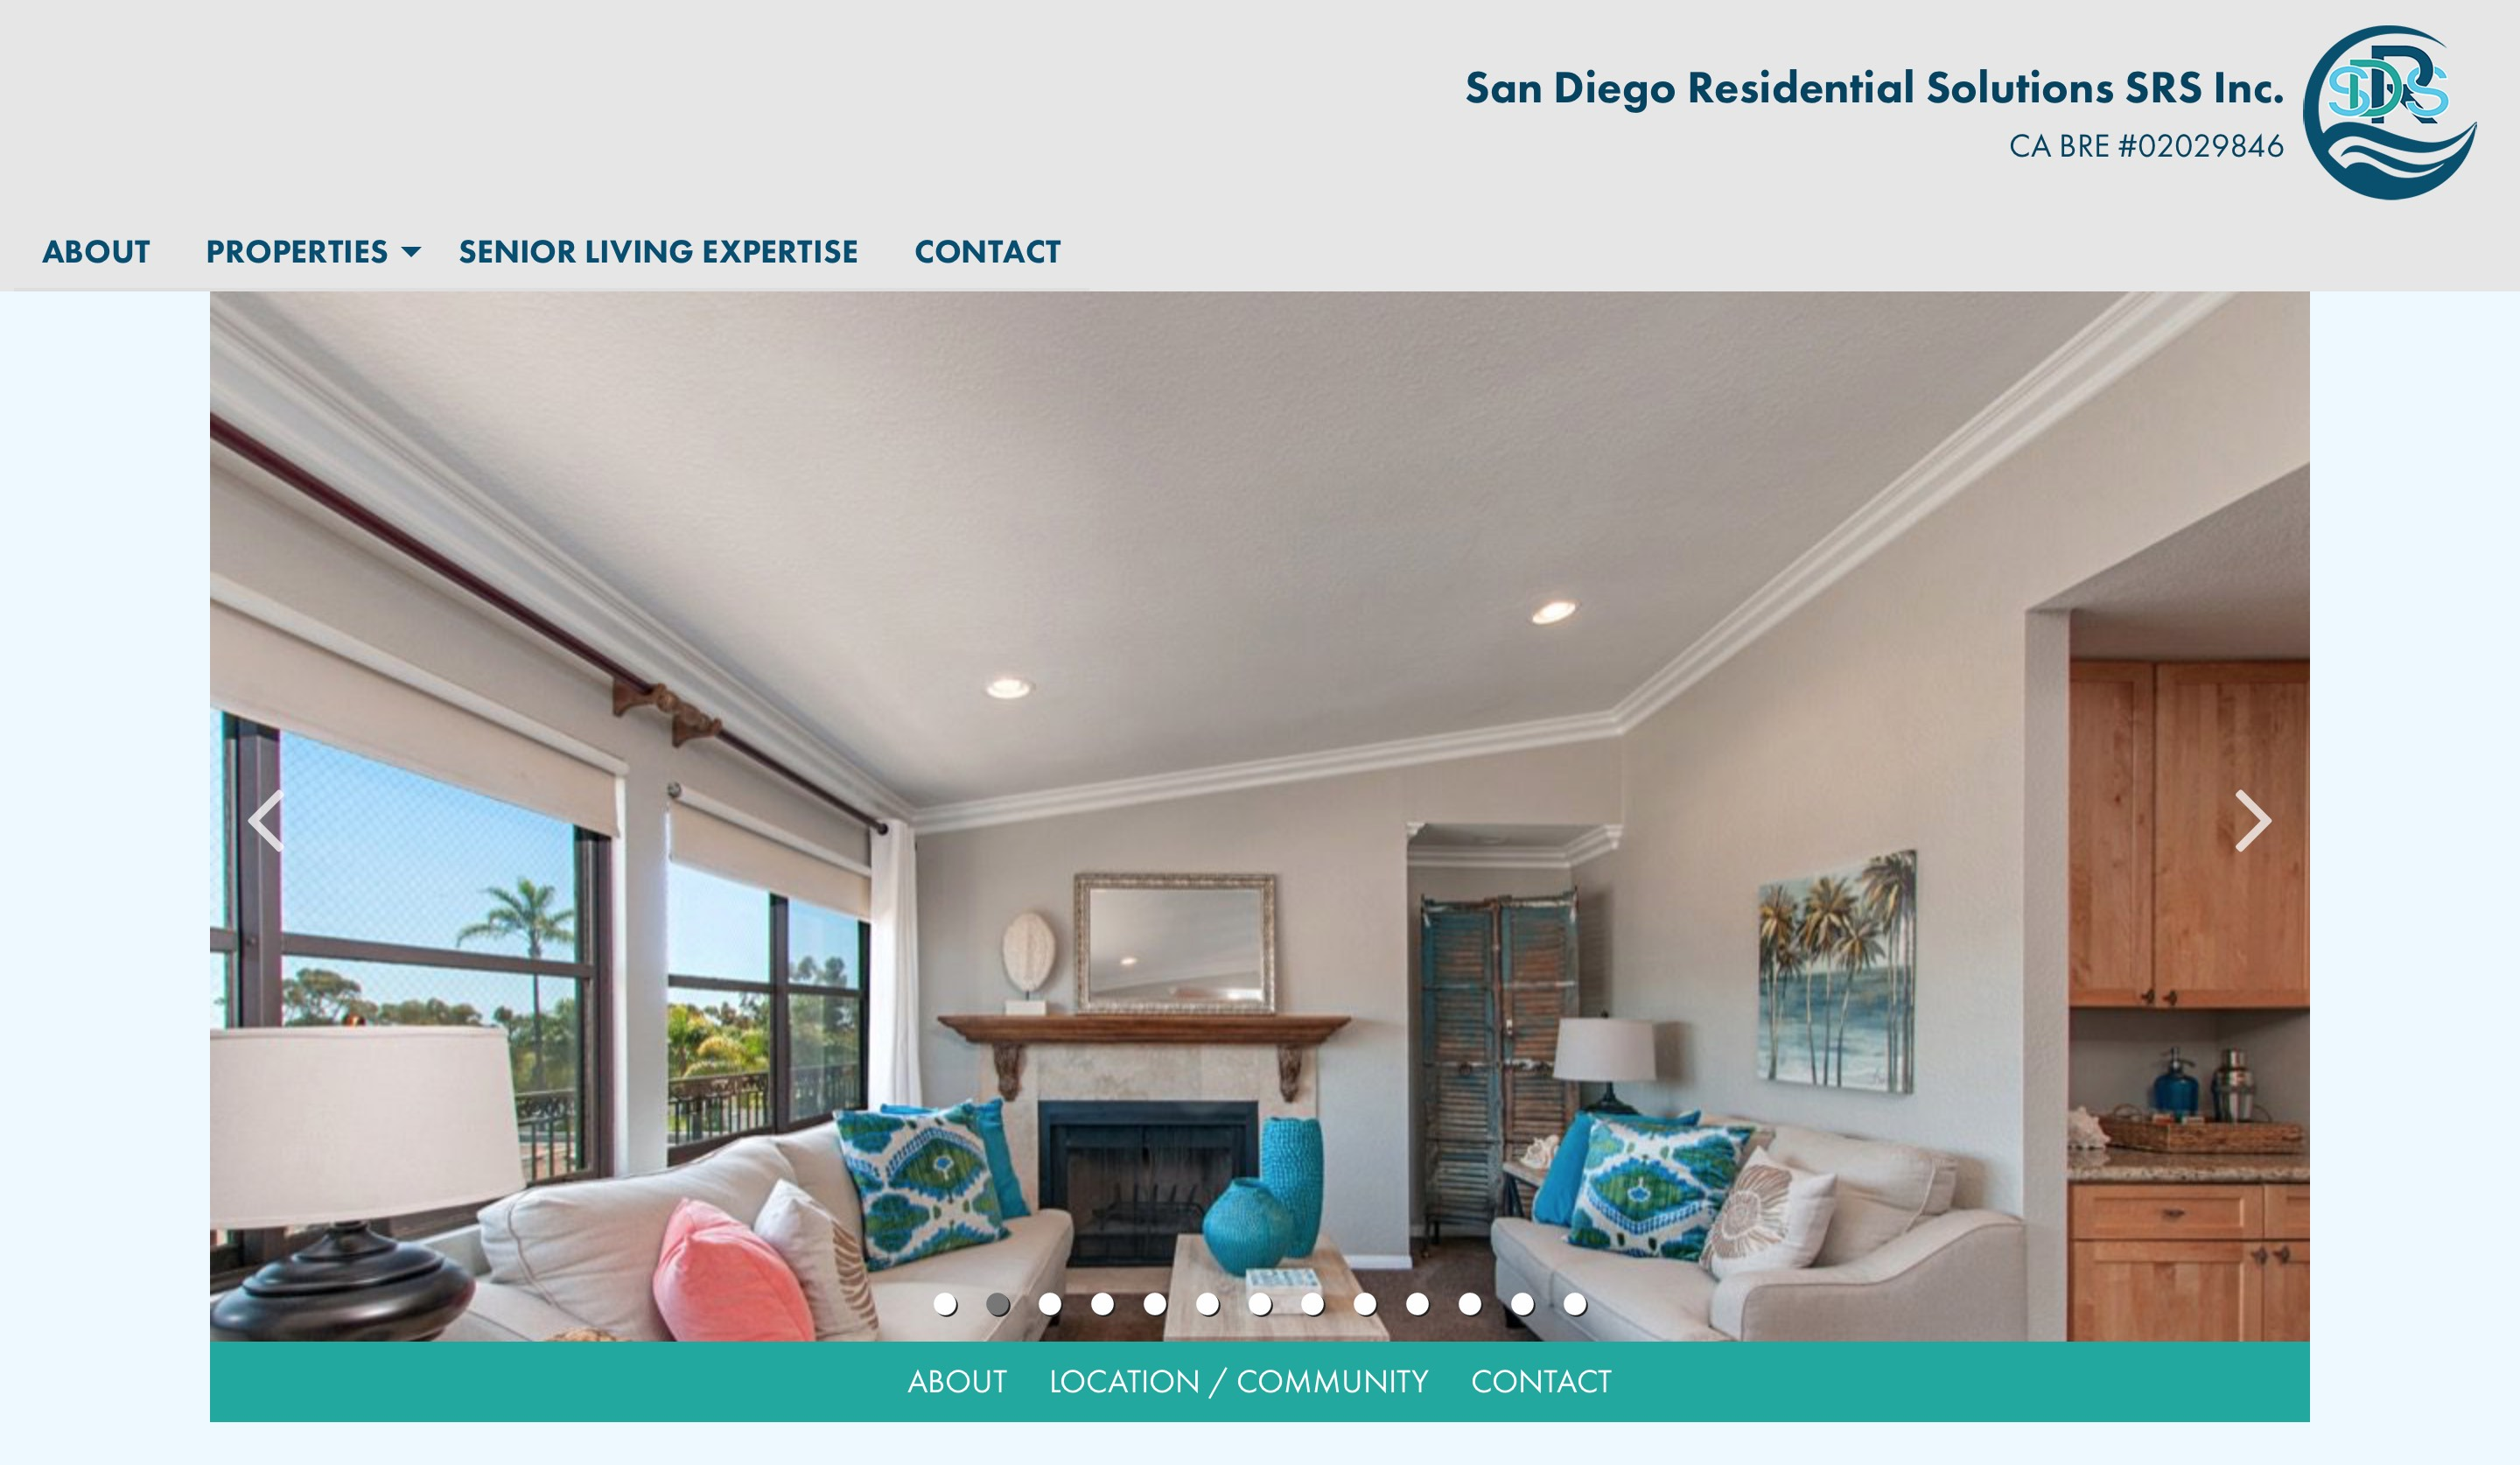 San Diego Residential Solutions property detail page screenshot